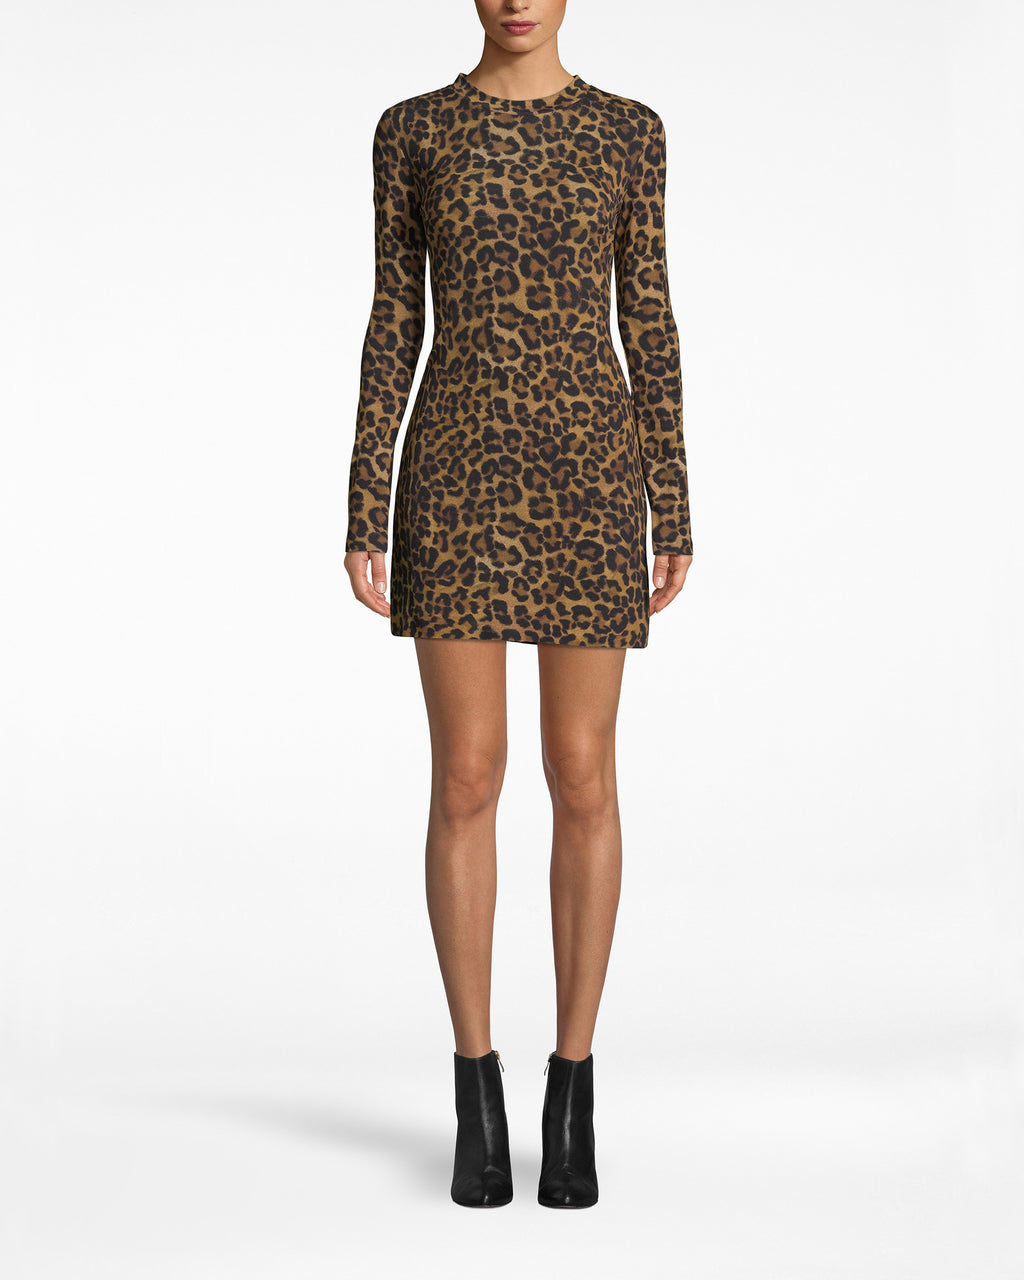 BM10220 - FURRY LEOPARD JERSEY L/S SHIRT DRESS - dresses - short - Categorize under Need. This leopard shirt dress is sexy, sleek, and effortlessly cool. It has a concealed back zipper and long sleeves.